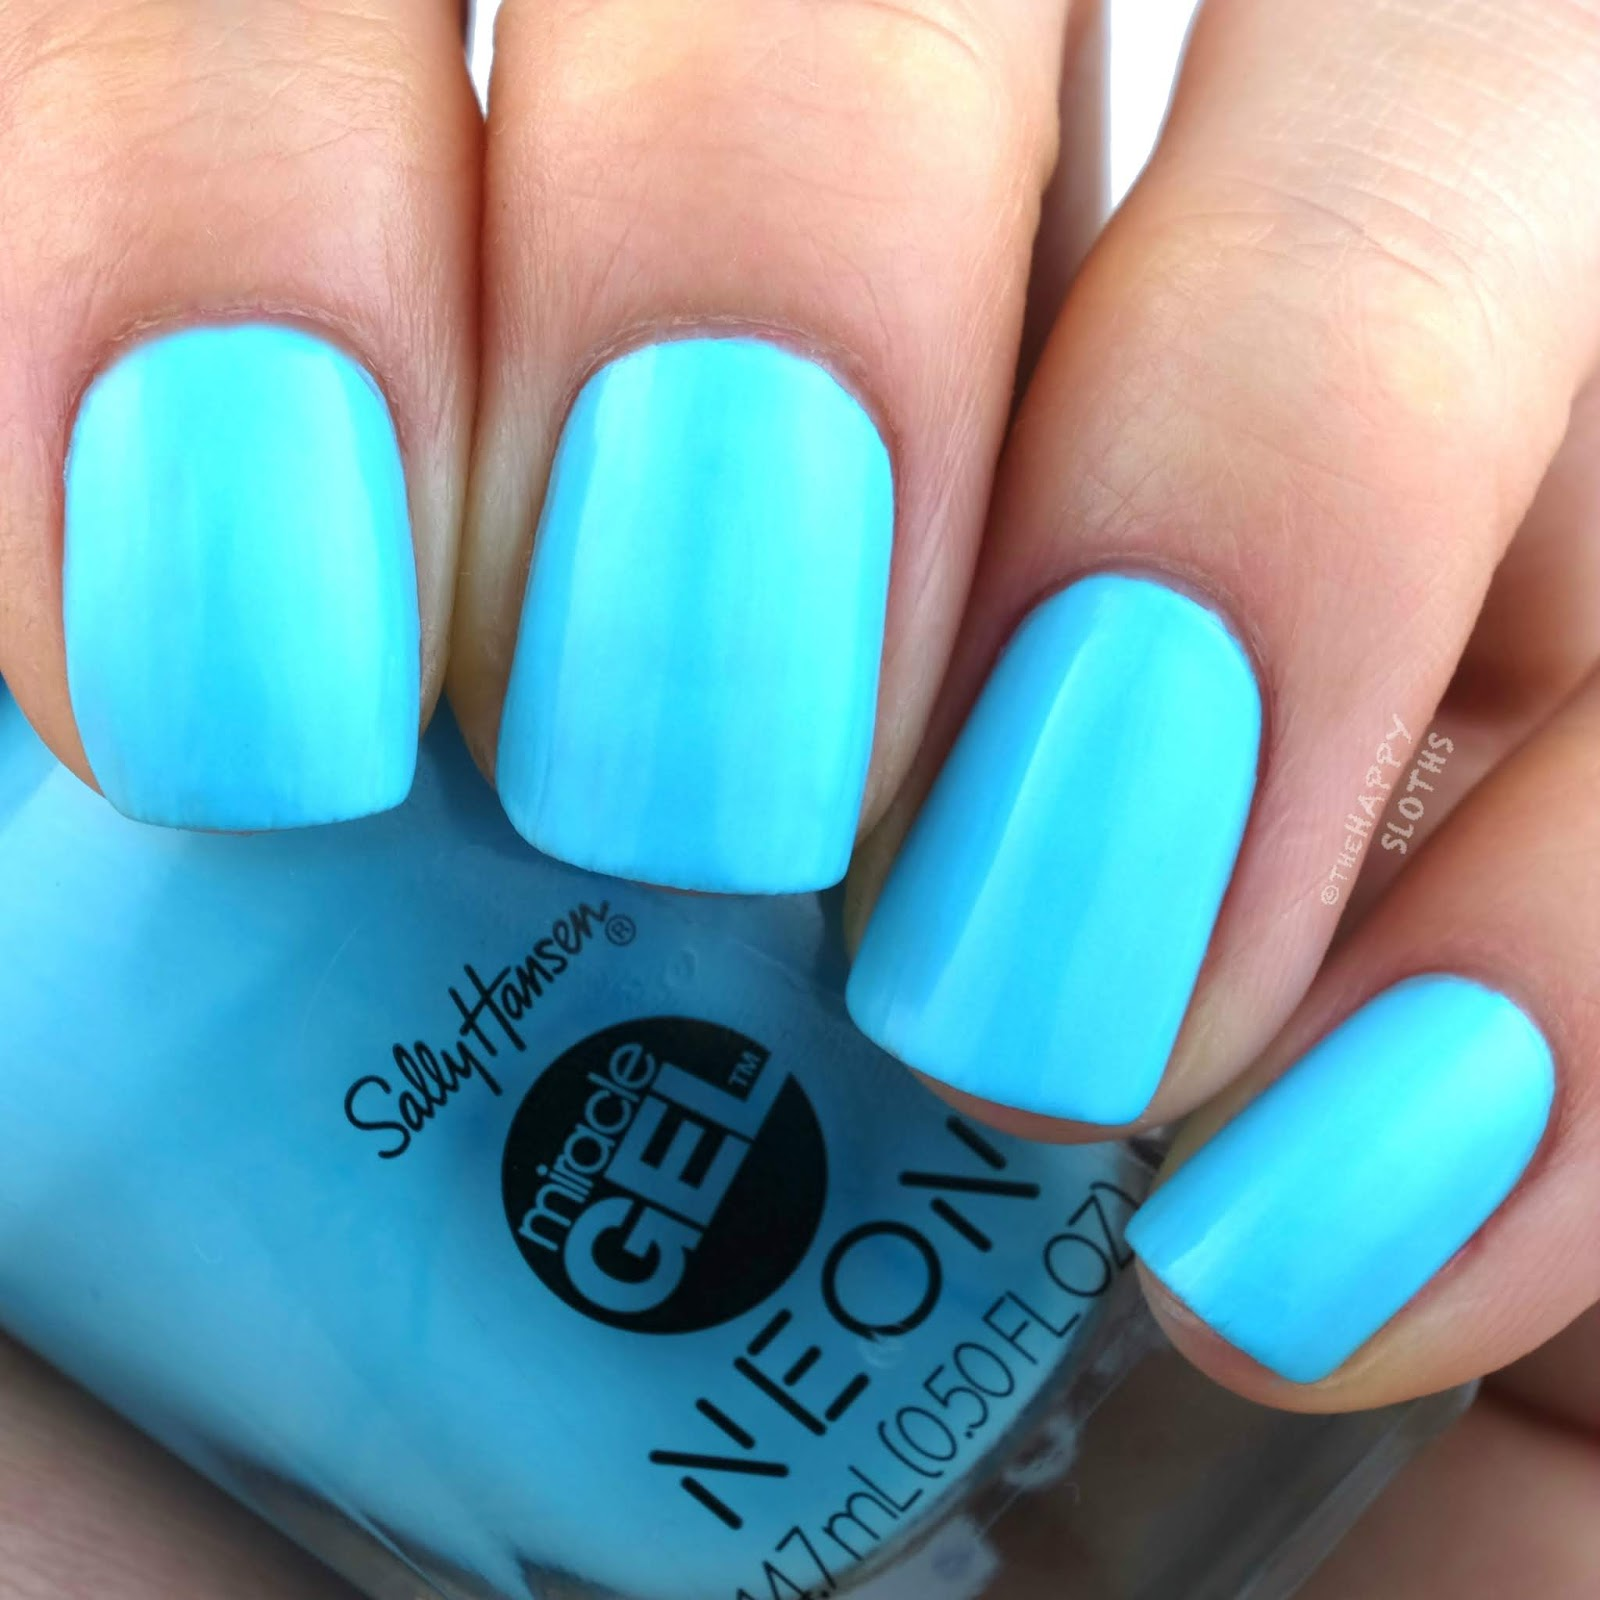 Sally Hansen | Miracle Gel Summer 2019 Neon Collection | Miami Ice: Review and Swatches